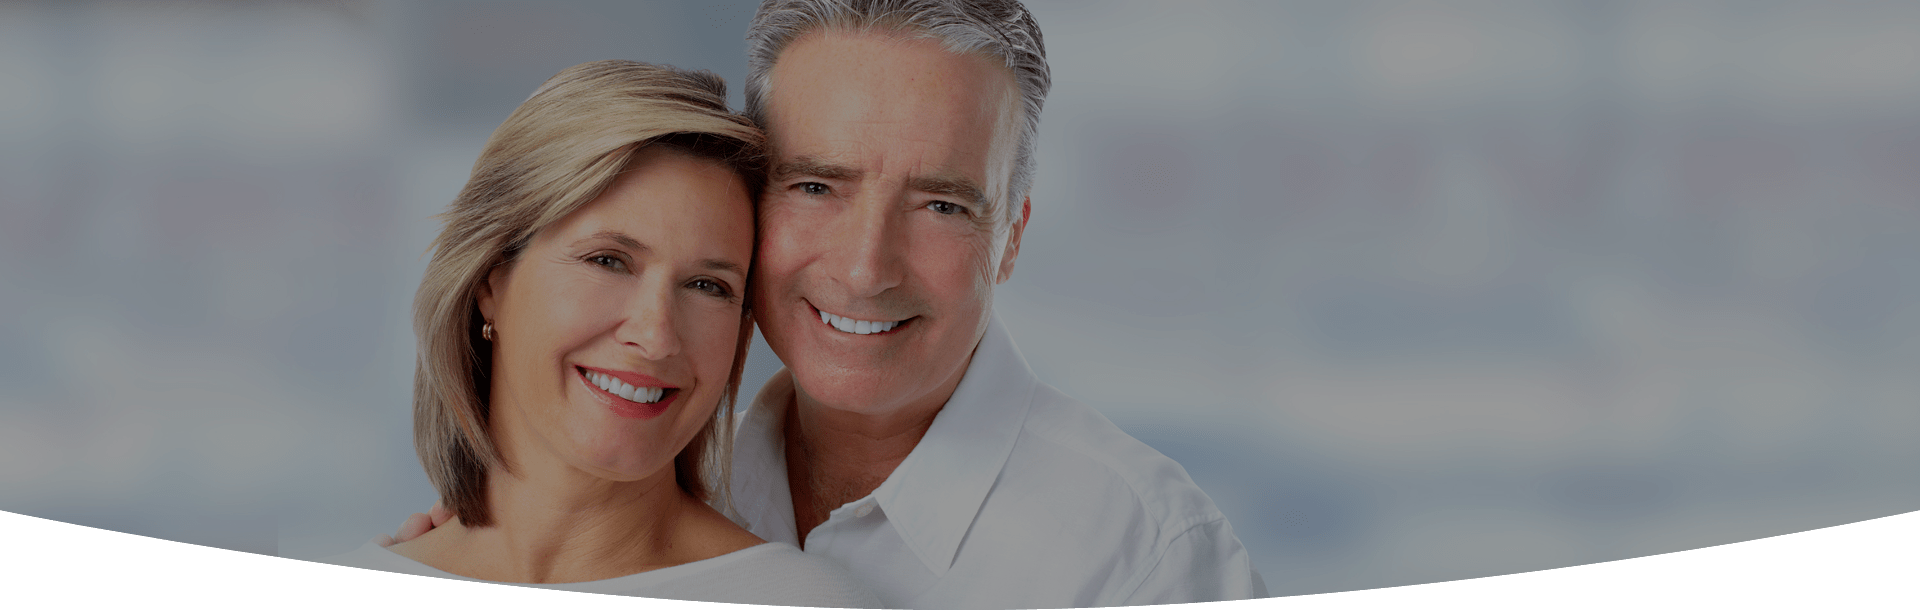 Dental Crowns and Bridges Austin - Cosmetic Dentistry Austin,  Cosmetic Dentists Austin,  Cosmetic Dental Treatments Austin TX,  Austin Cosmetic Dentistry: It is a branch of dentistry dealing with the appearance of the teeth.